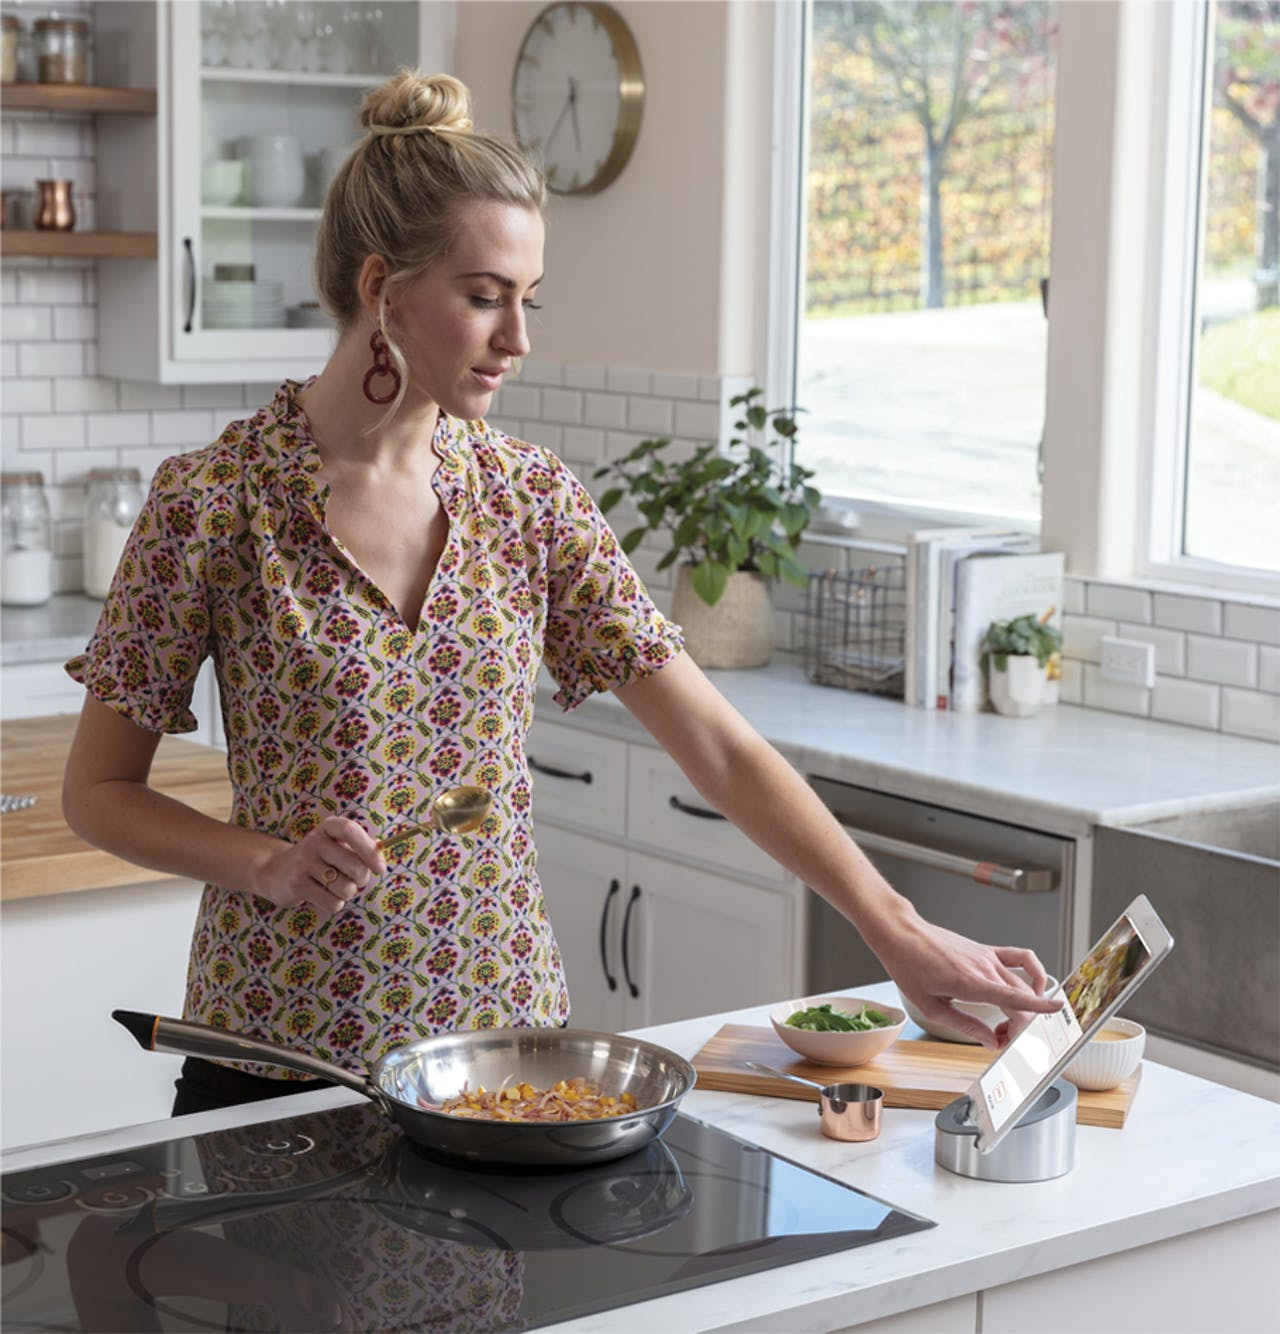 Woman cooking with a hestan cue smart pan on Café induction cooktop